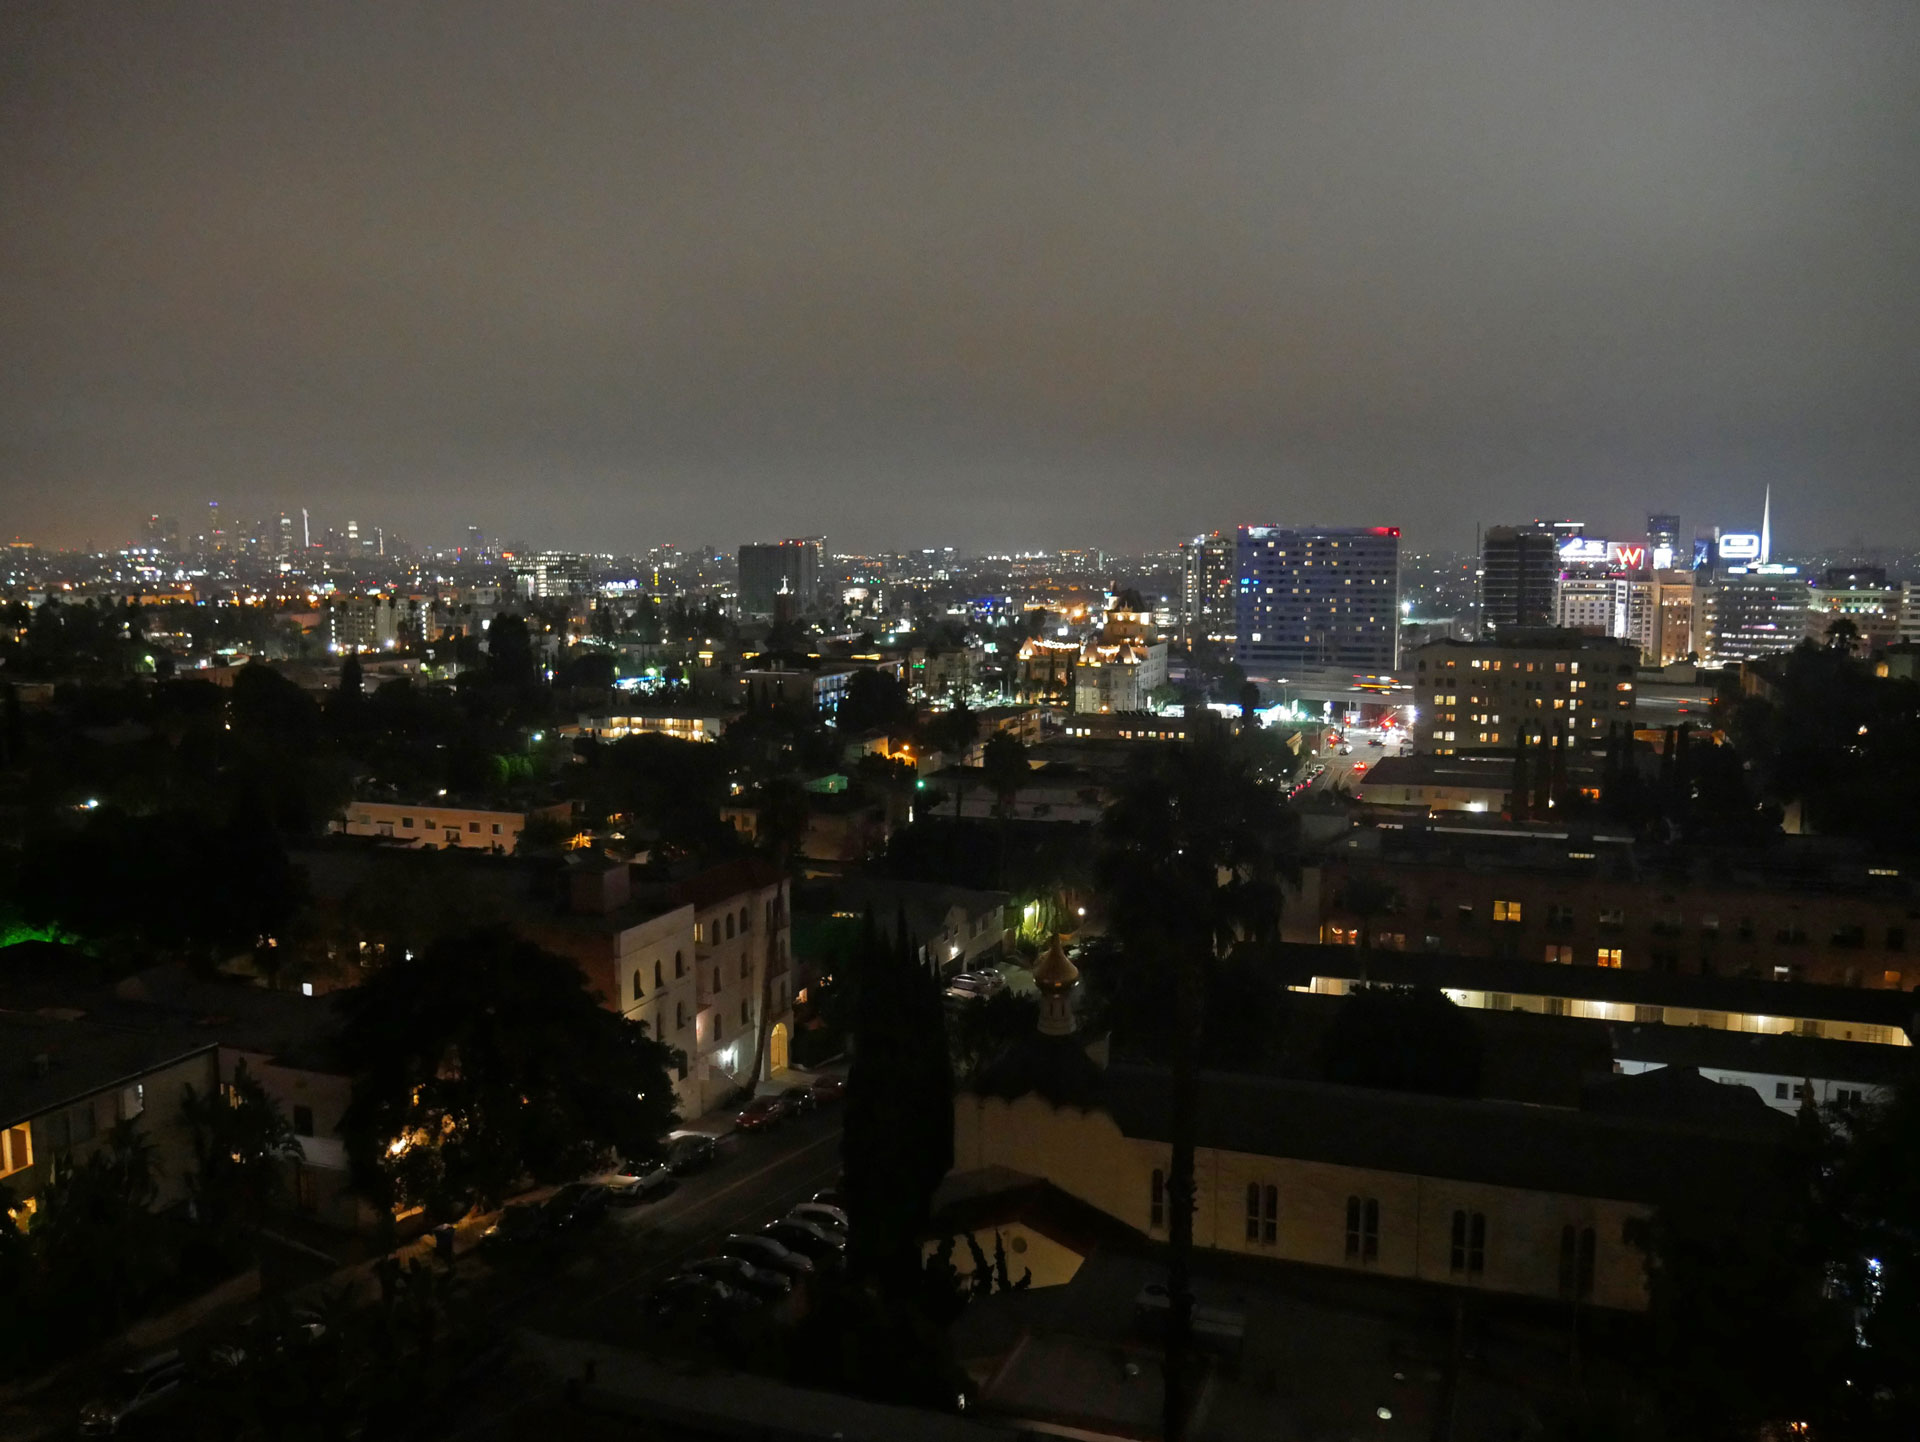 Hollywood Skyline at night in Los Angeles, CA